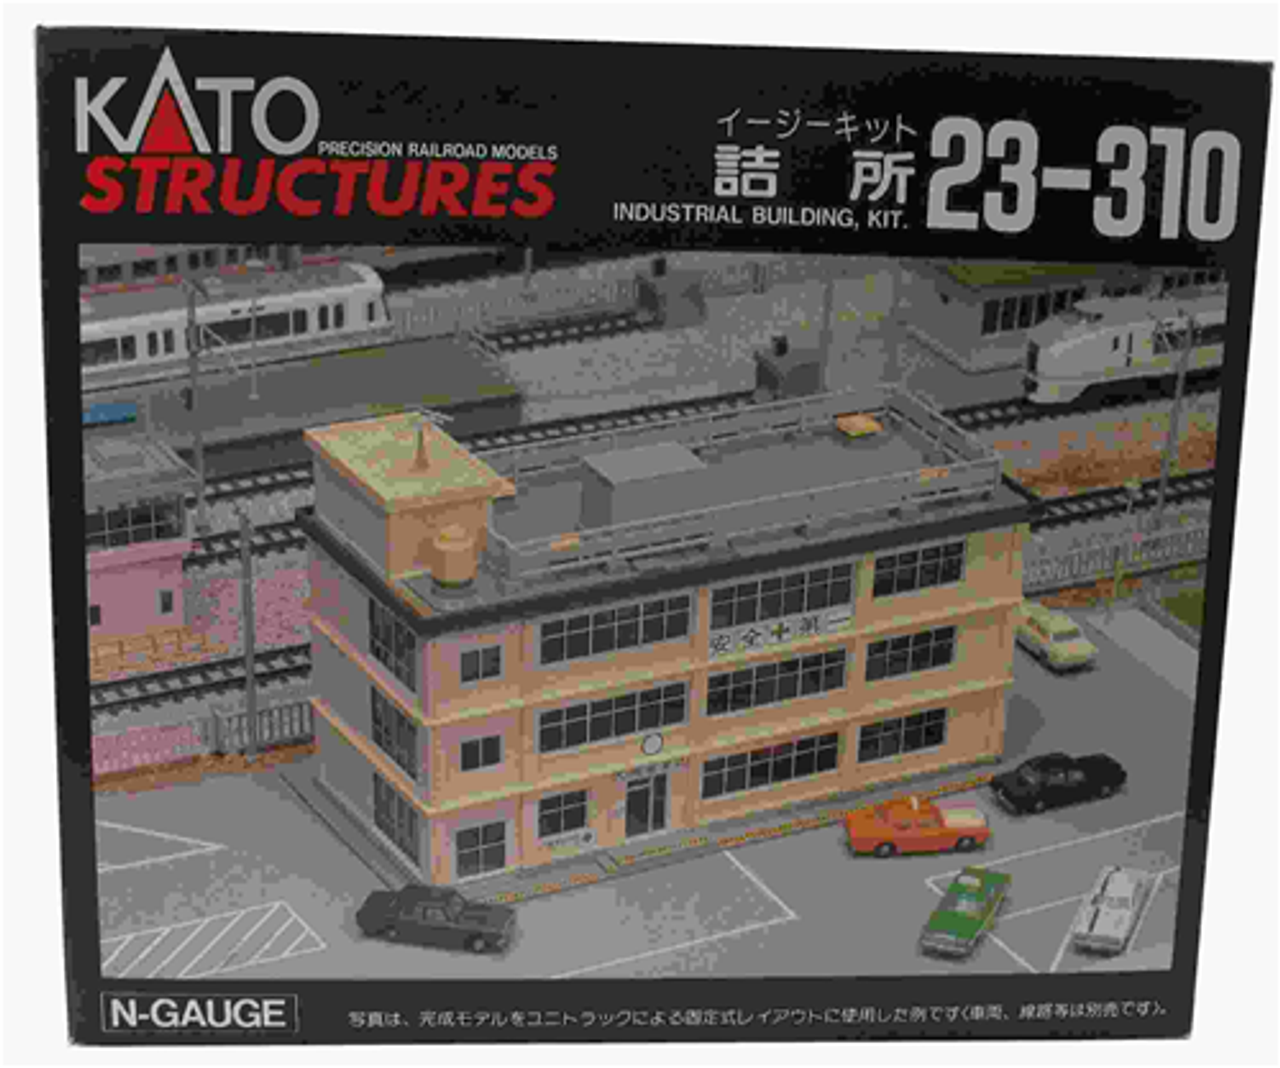 Kato N 23310 Industrial Building Kit